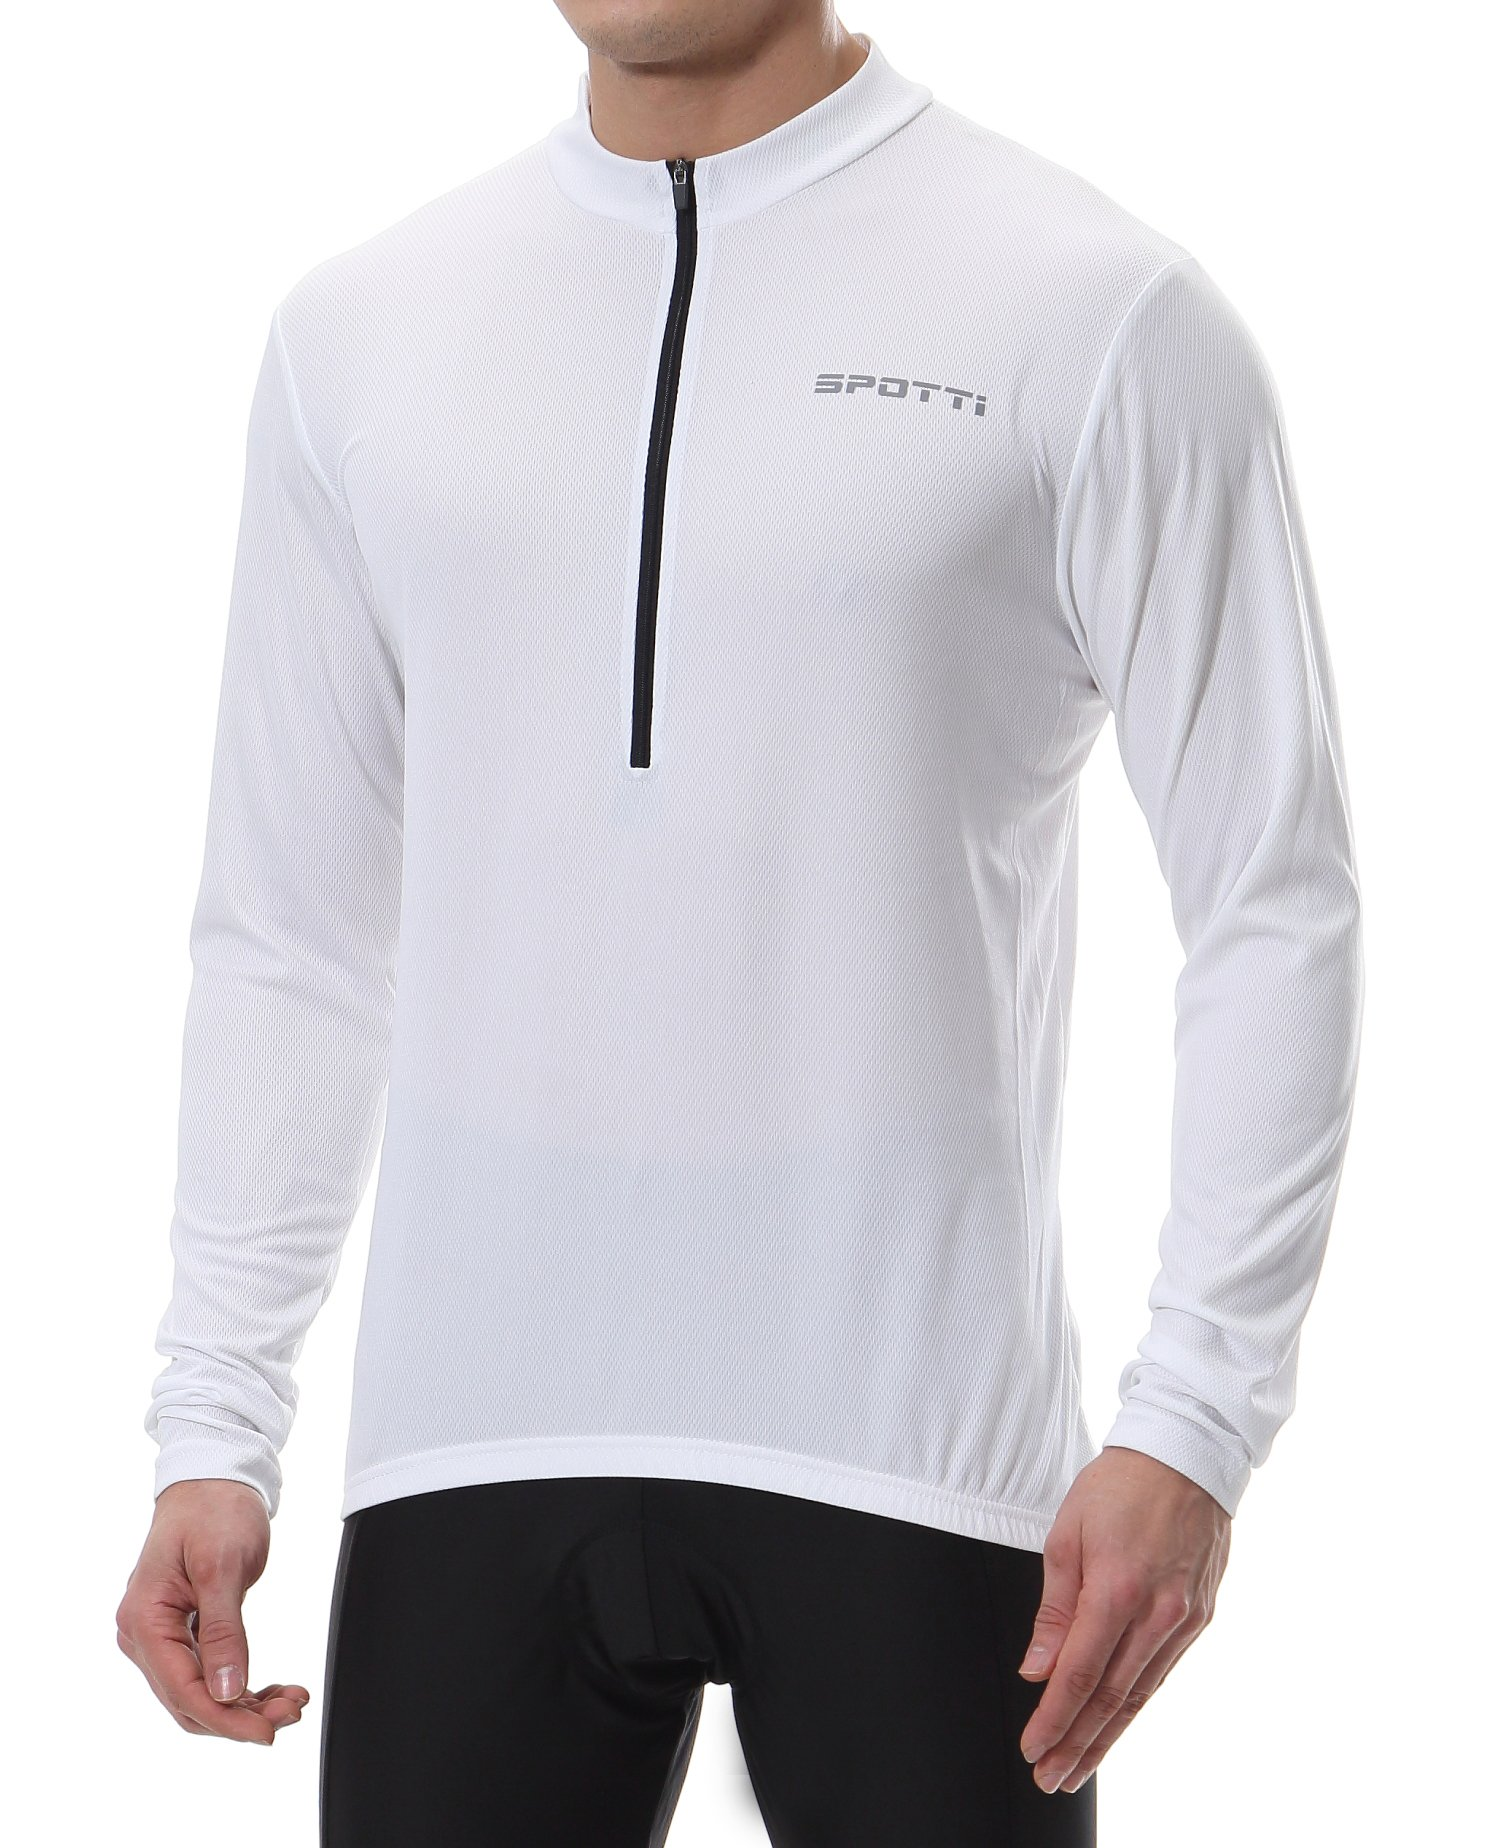 Spotti Men's Long Sleeve Cycling Jersey, Bike Biking Shirt- Breathable and Quick Dry (Chest 36-38 - Small, White)